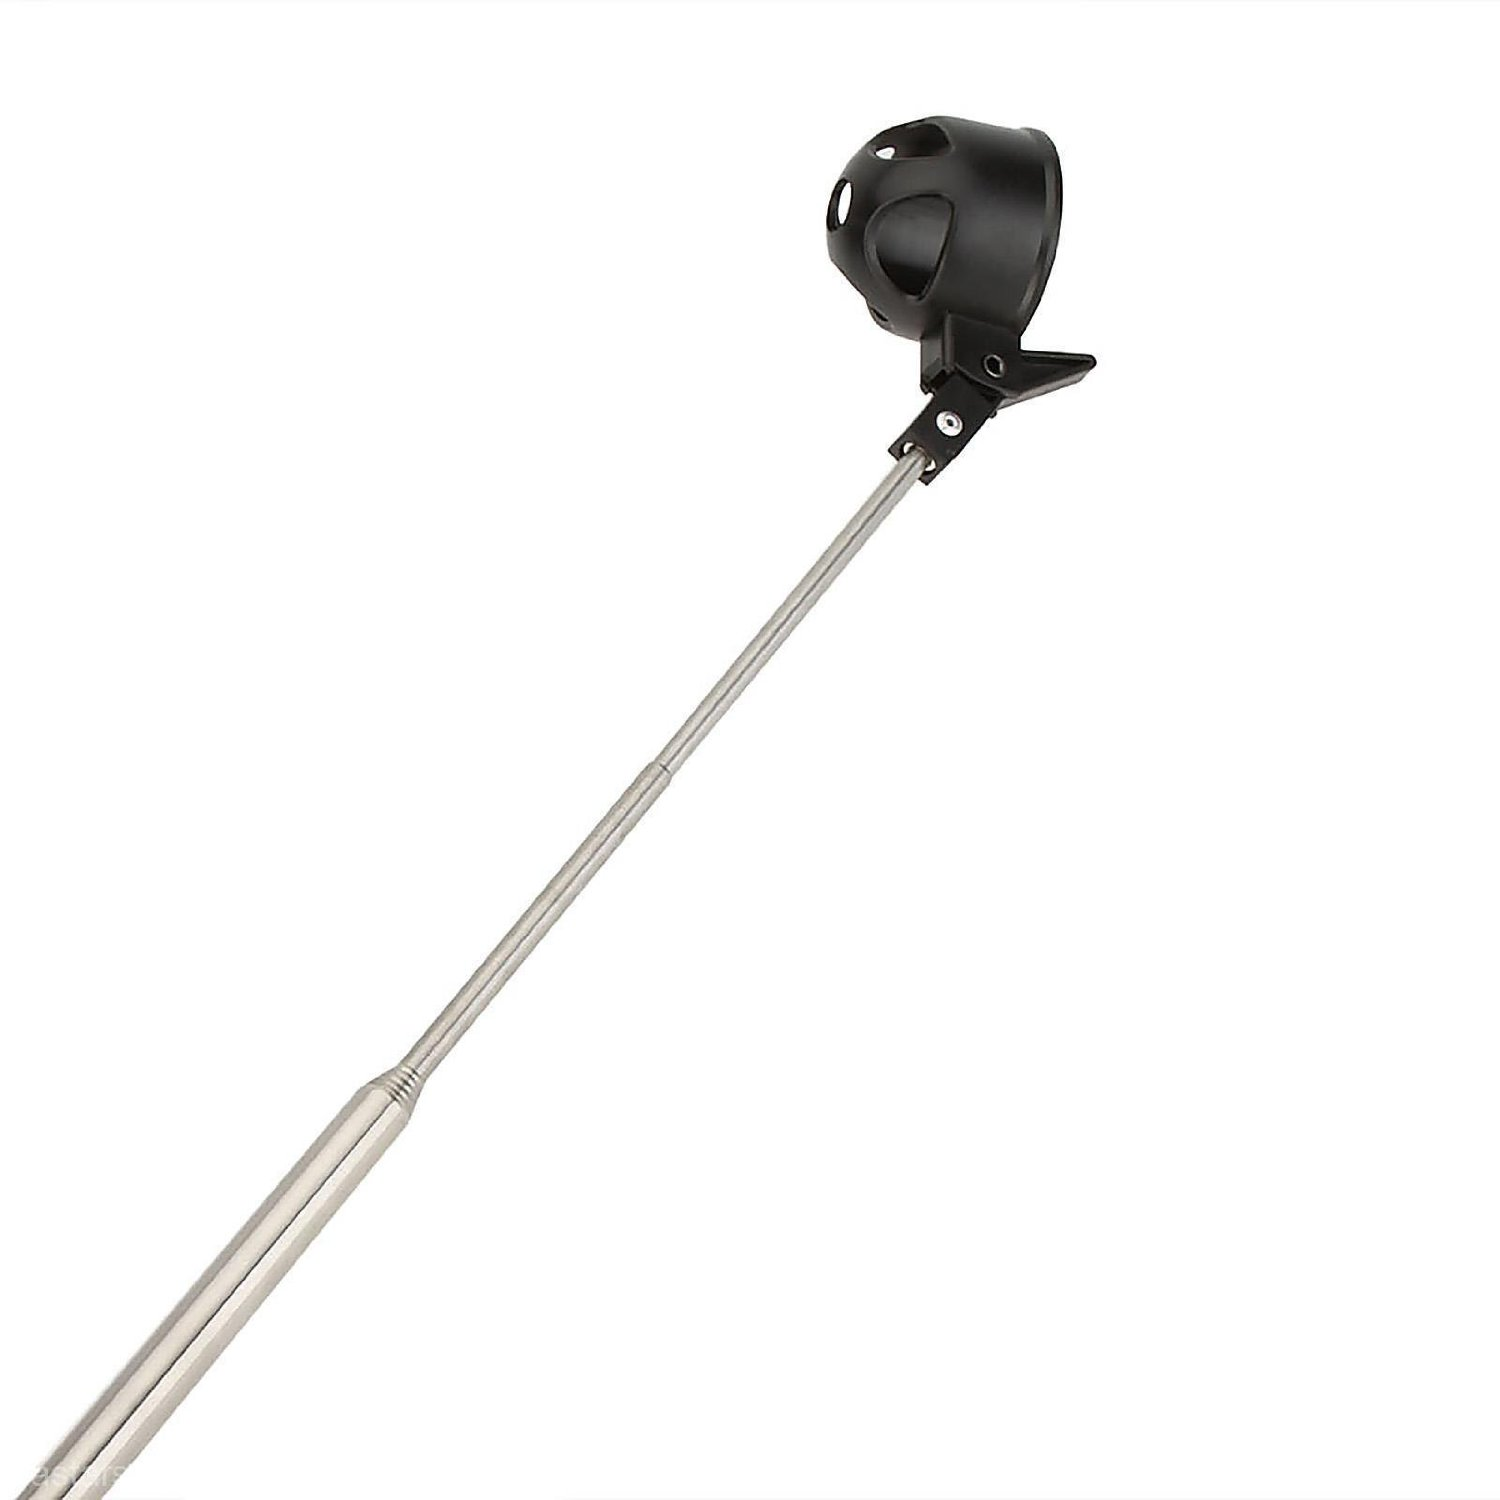 LGFM-Brand New Retractable Steel Saver Telescopic Golf Ball Antenna Picking up the ball Pole(China (Mainland))